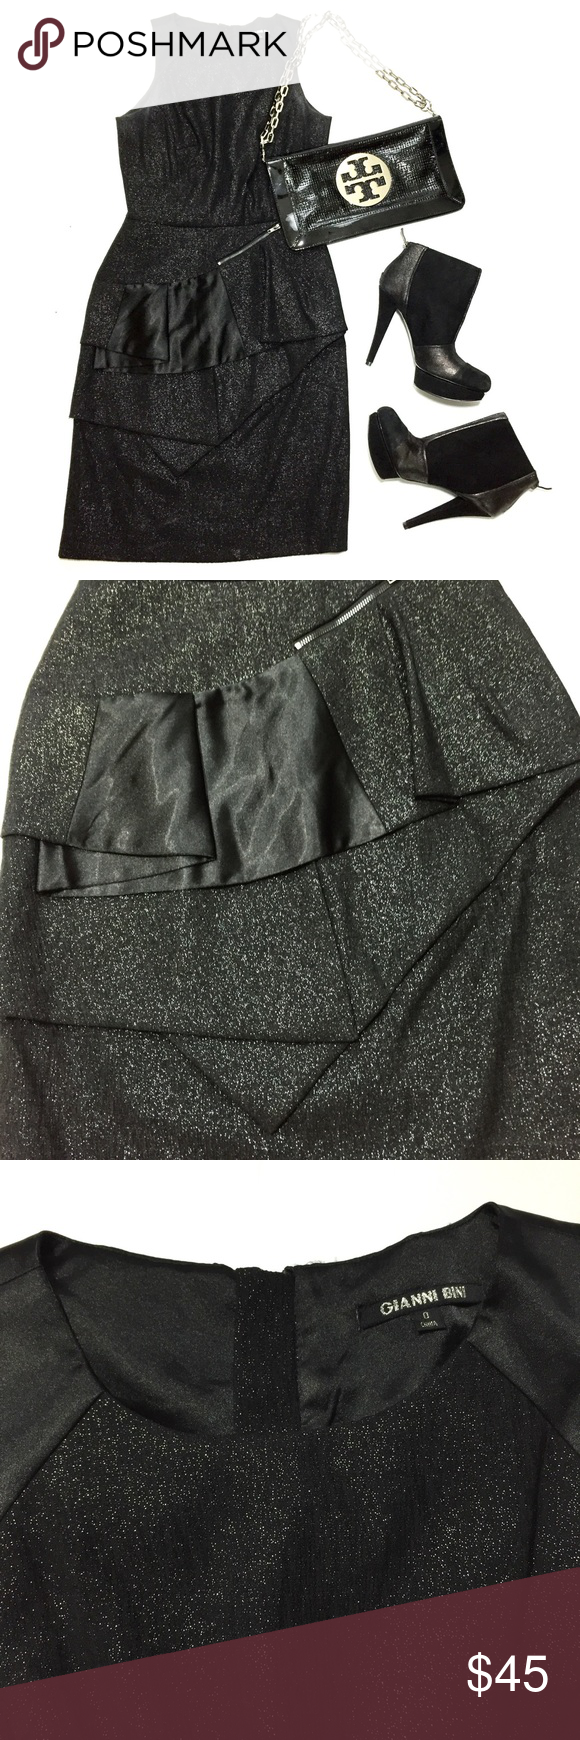 LBD Shimmer Dress Beautiful black dress with shimmer fabric and ruffle. Very flattering fit. Wore once. Needs to be dry cleaned it has a bit deodorant staining under armpits. Gianni Bini Dresses